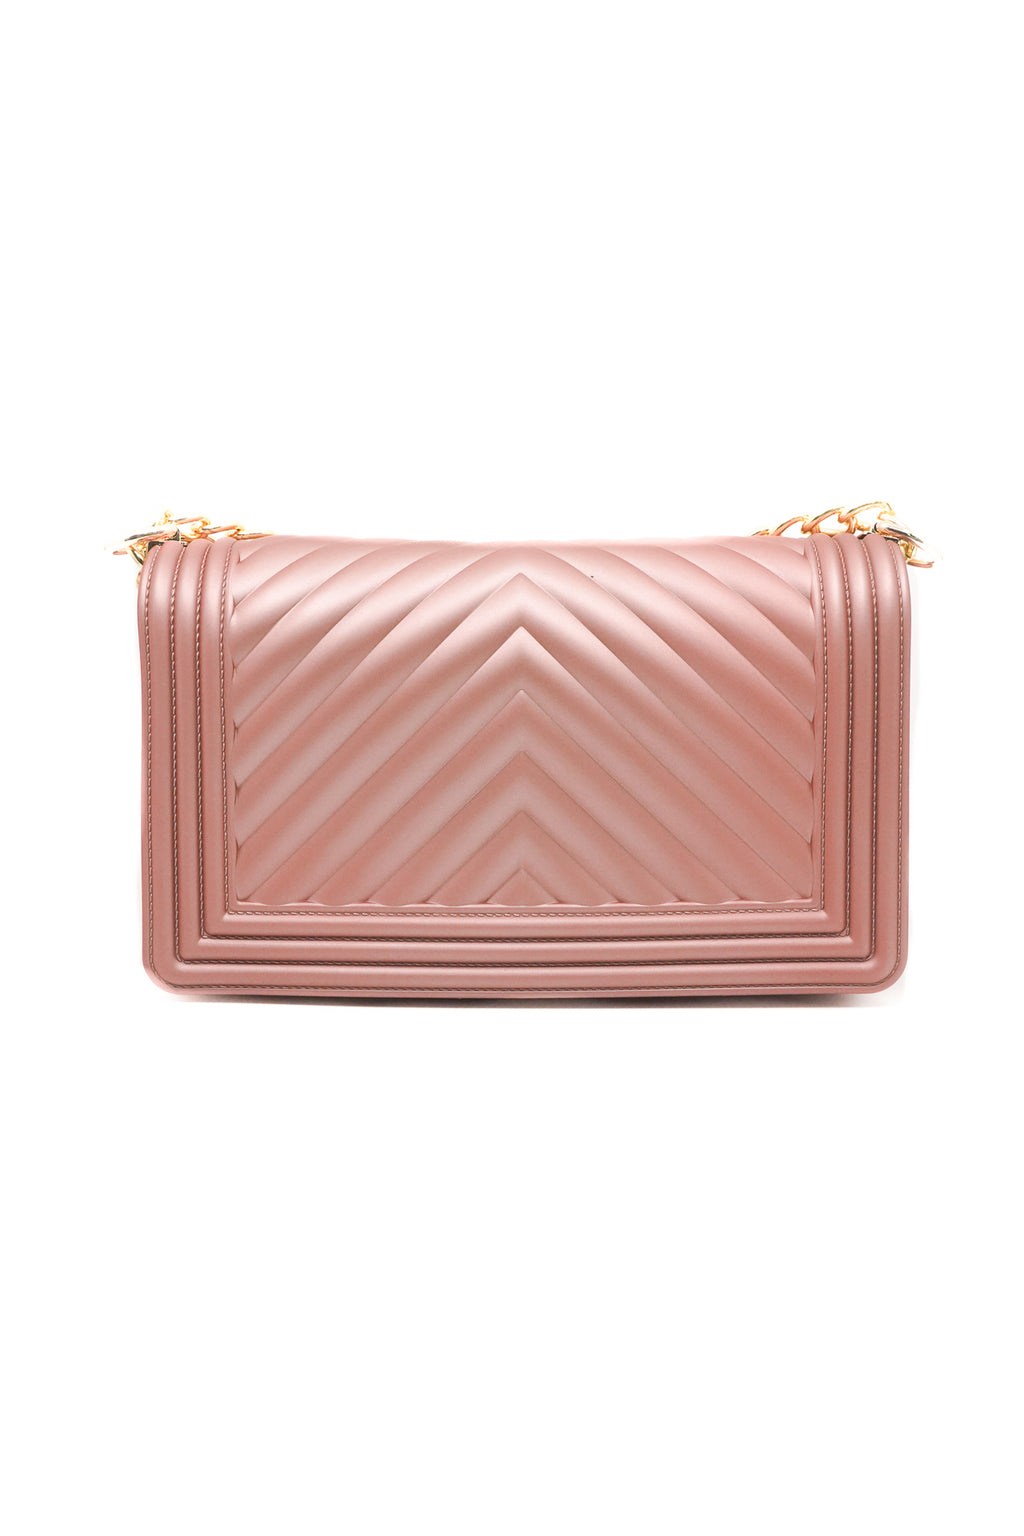 Women Chevron Embossed Frosted Jelly Shoulder V Pattern Bag in Rose Gold